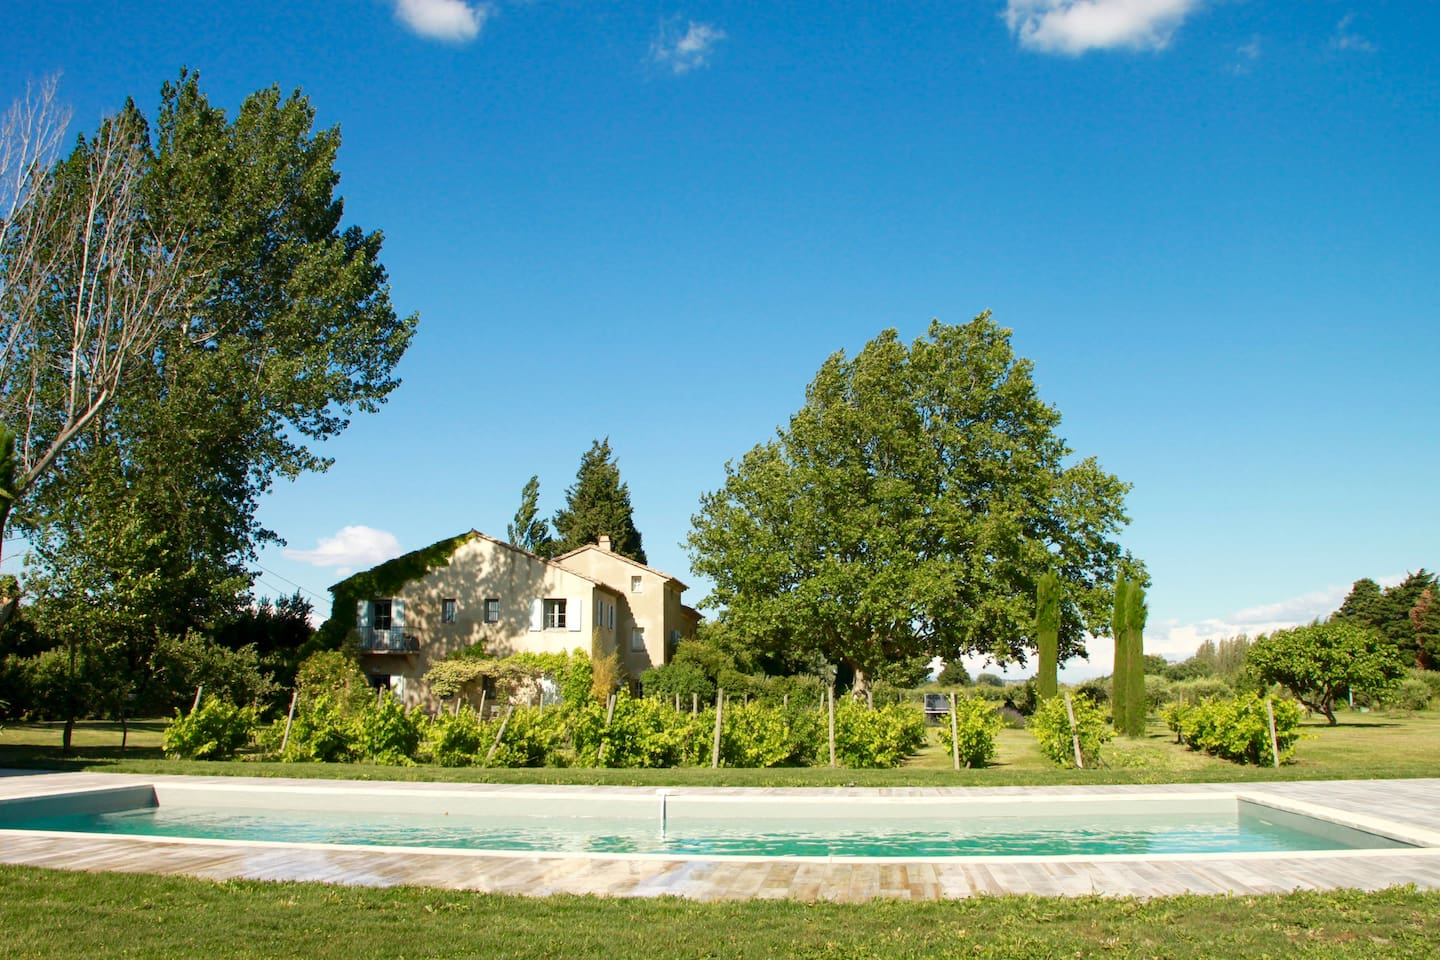 Le Mas des peupliers nested between vineyards and apple orchards